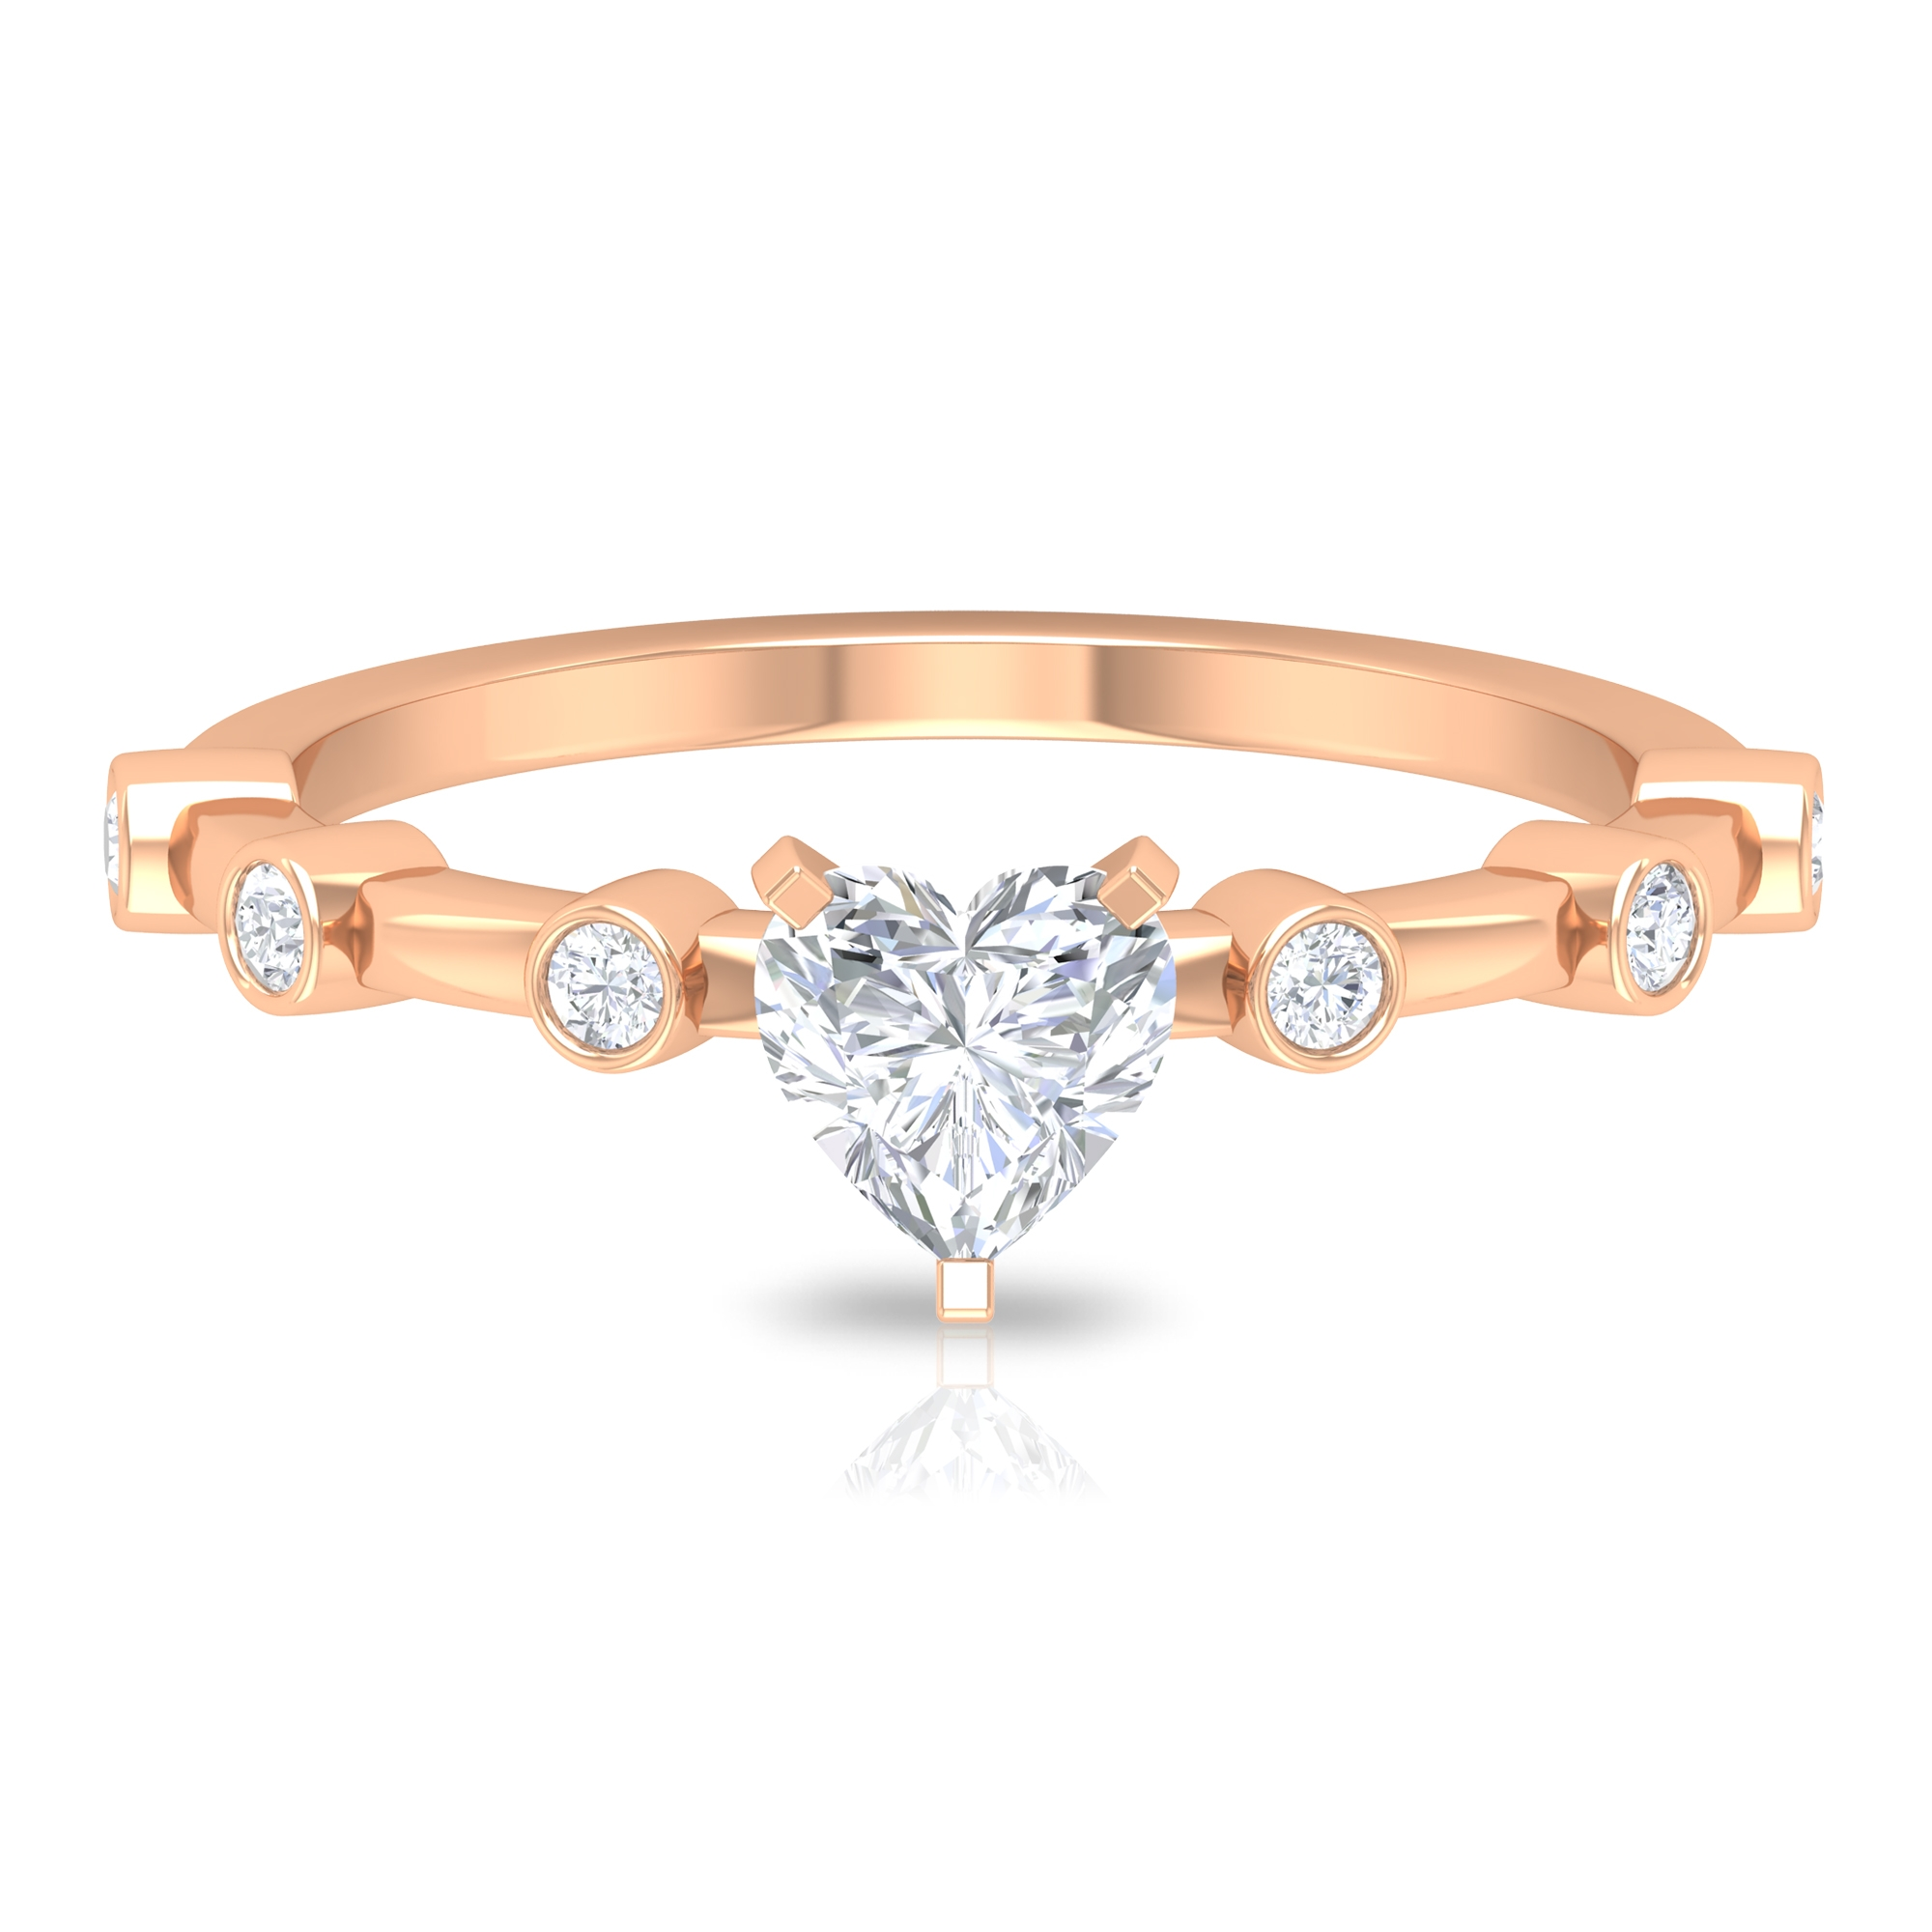 3/4 CT Heart Shape Diamond Solitaire Ring in 3 Prong Peg Head Setting with Spaced Set Side Stones